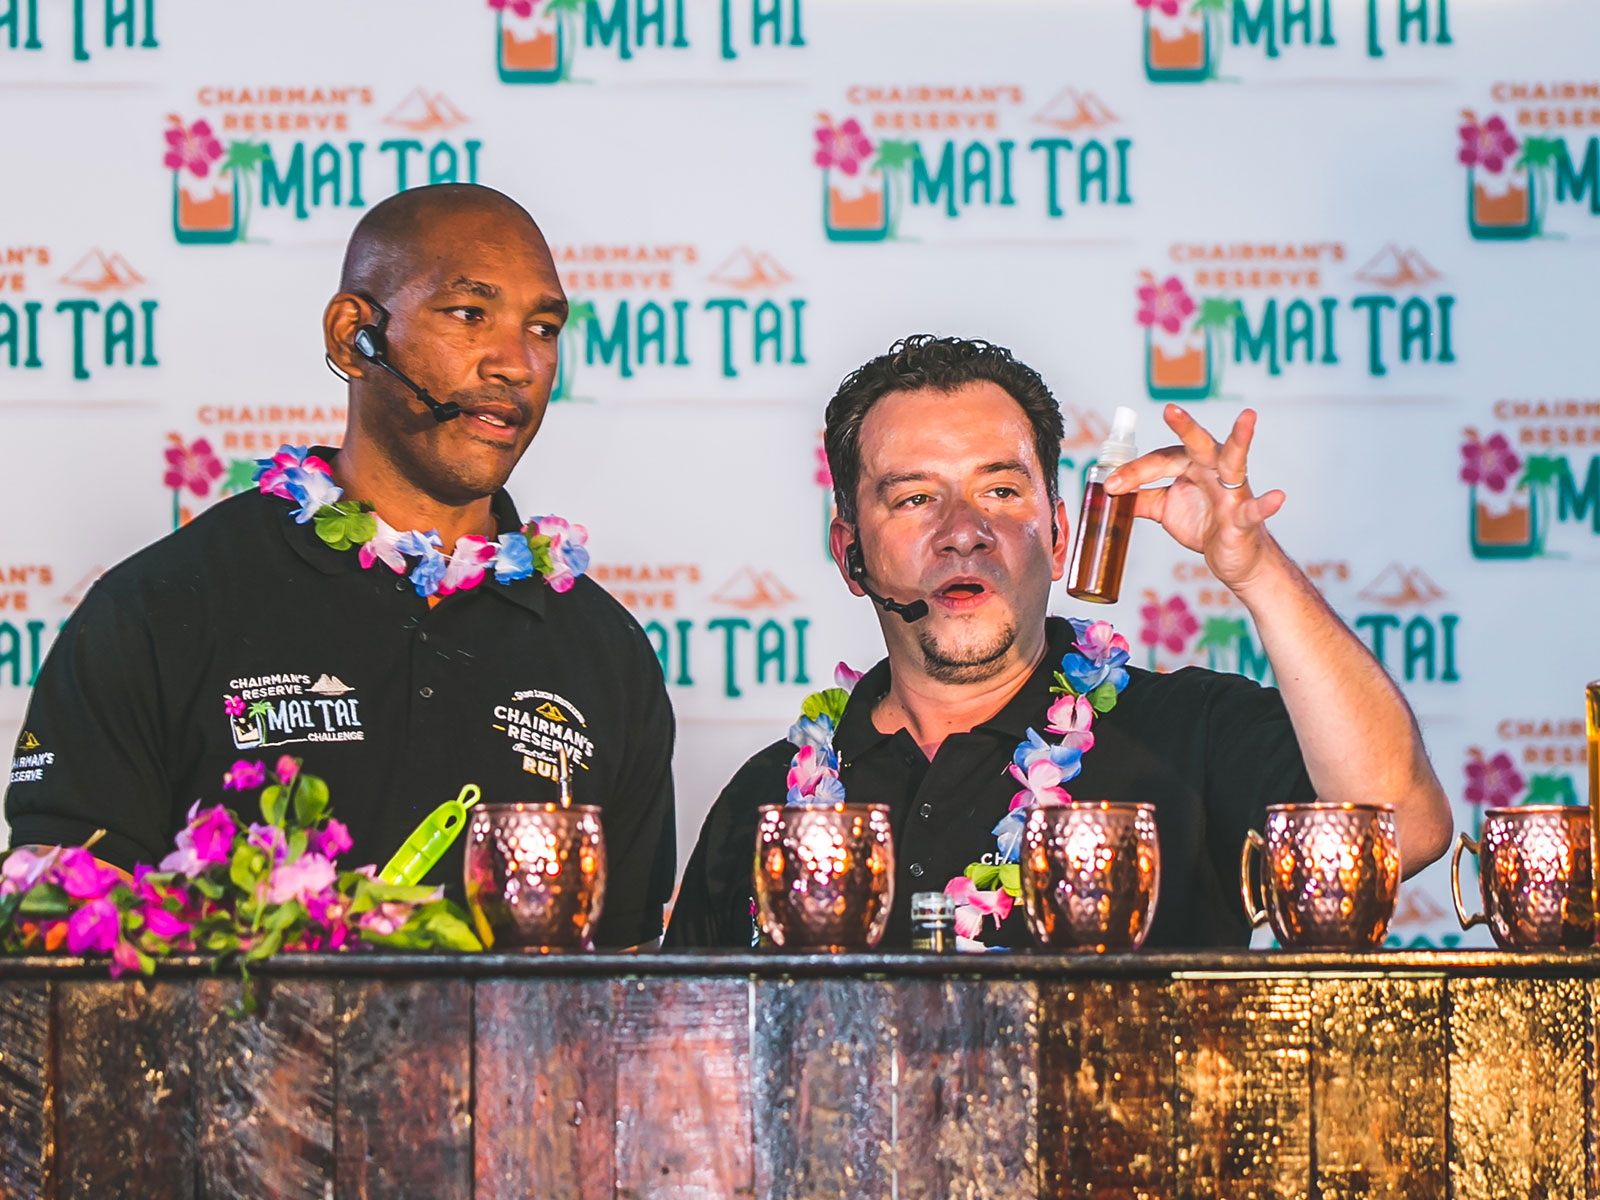 THE CHAIRMAN'S RESERVE MAI TAI FINALS - AT LONDON COCKTAIL CLUB IN BETHNAL GREEN LONDON